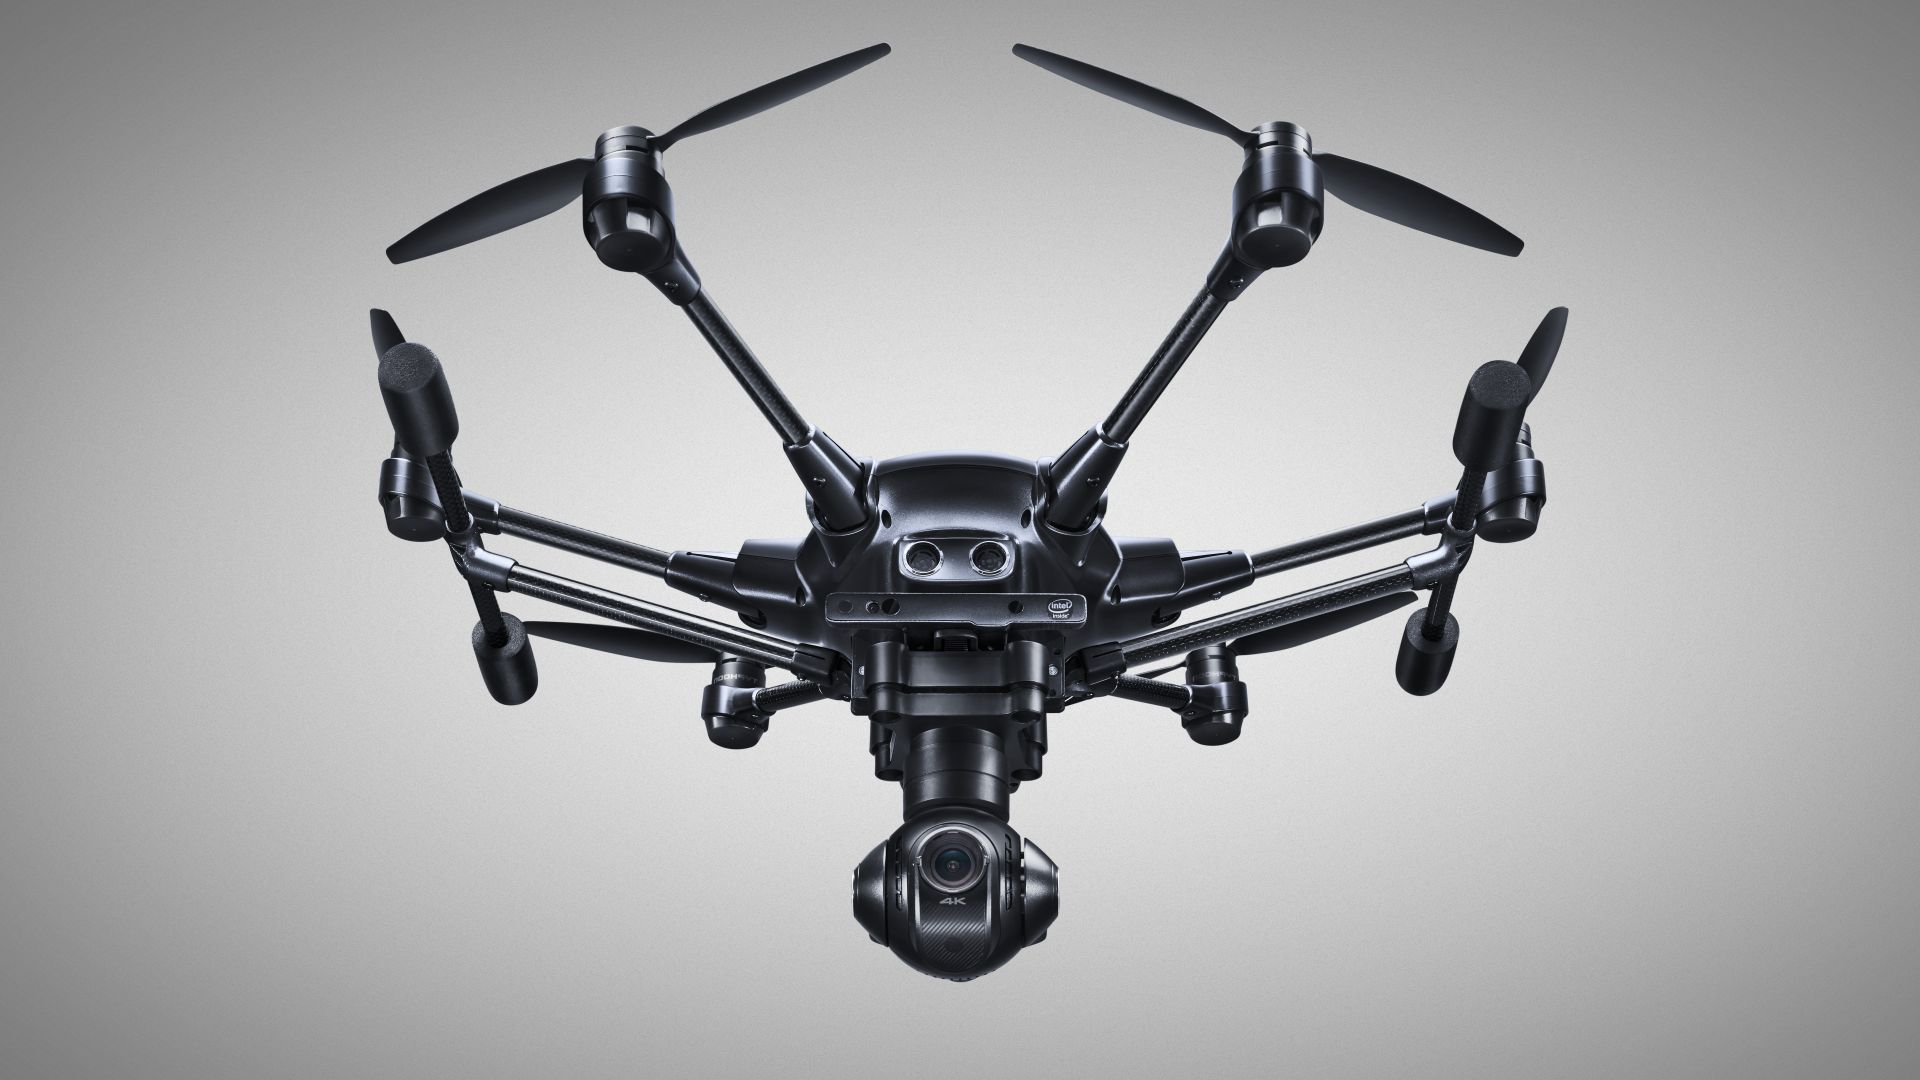 Yuneec Typhoon H Pro, hexacopter, review, best drones (horizontal)